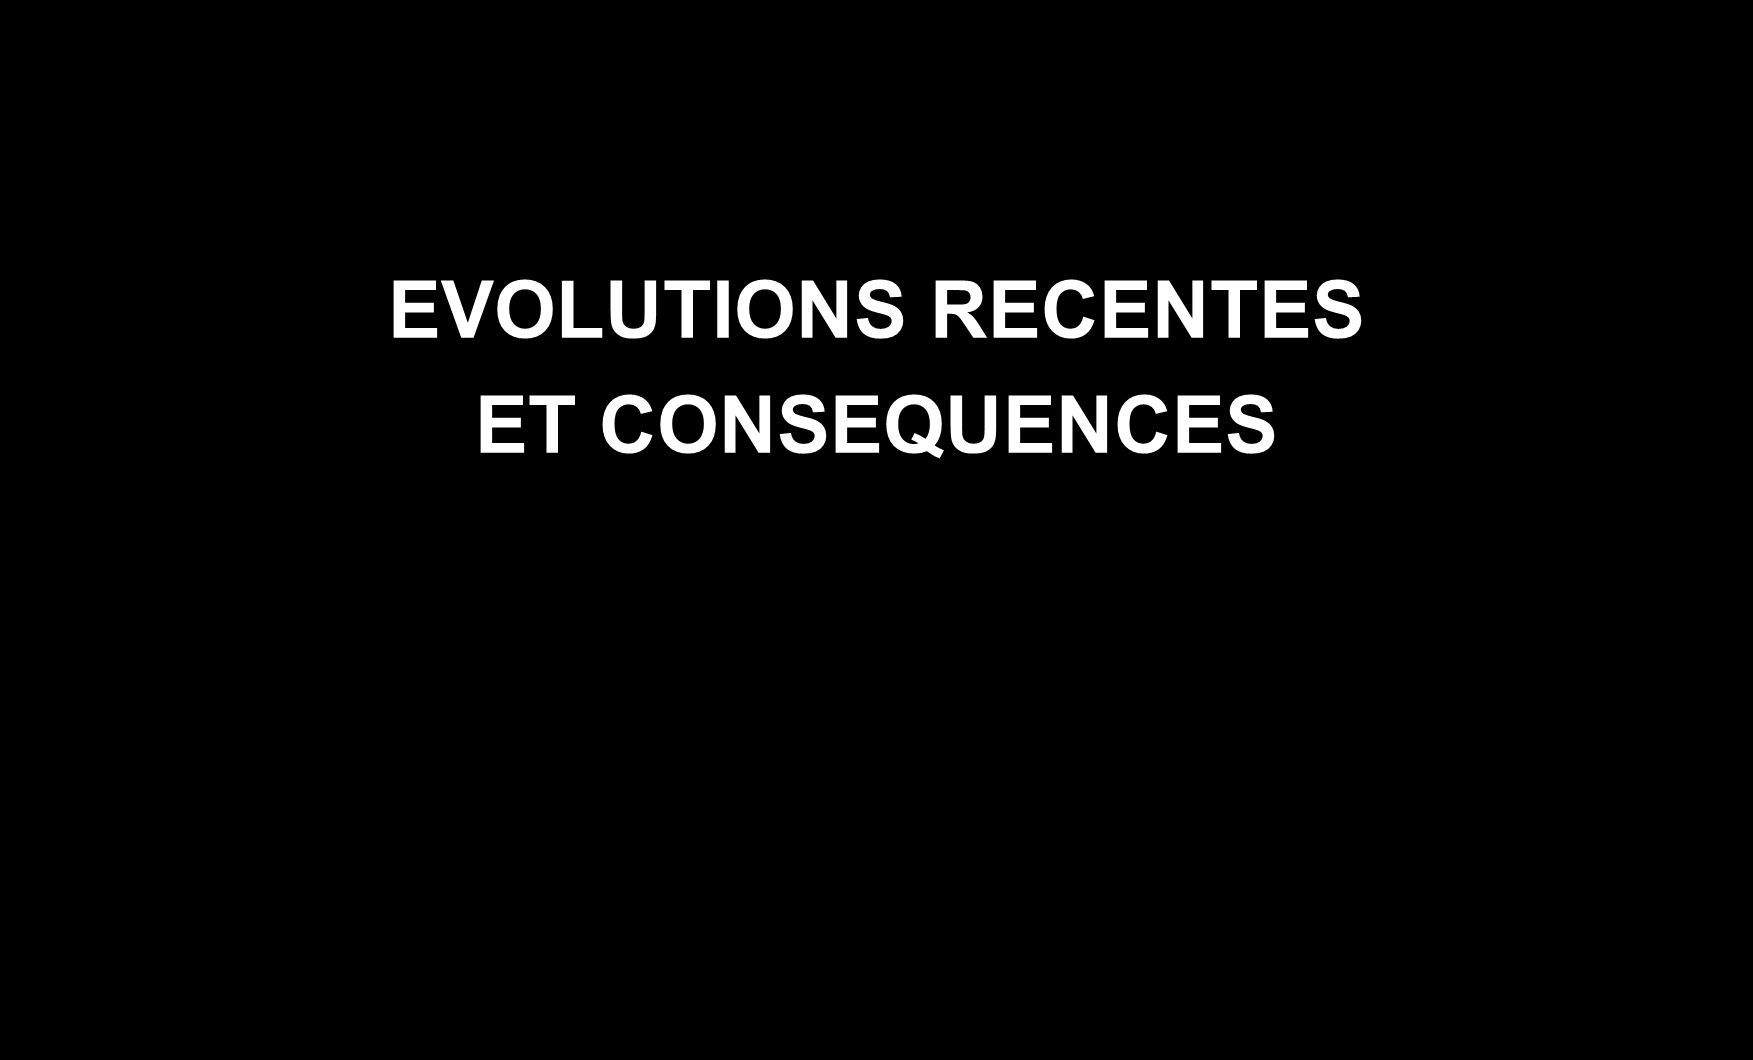 EVOLUTIONS RECENTES ET CONSEQUENCES